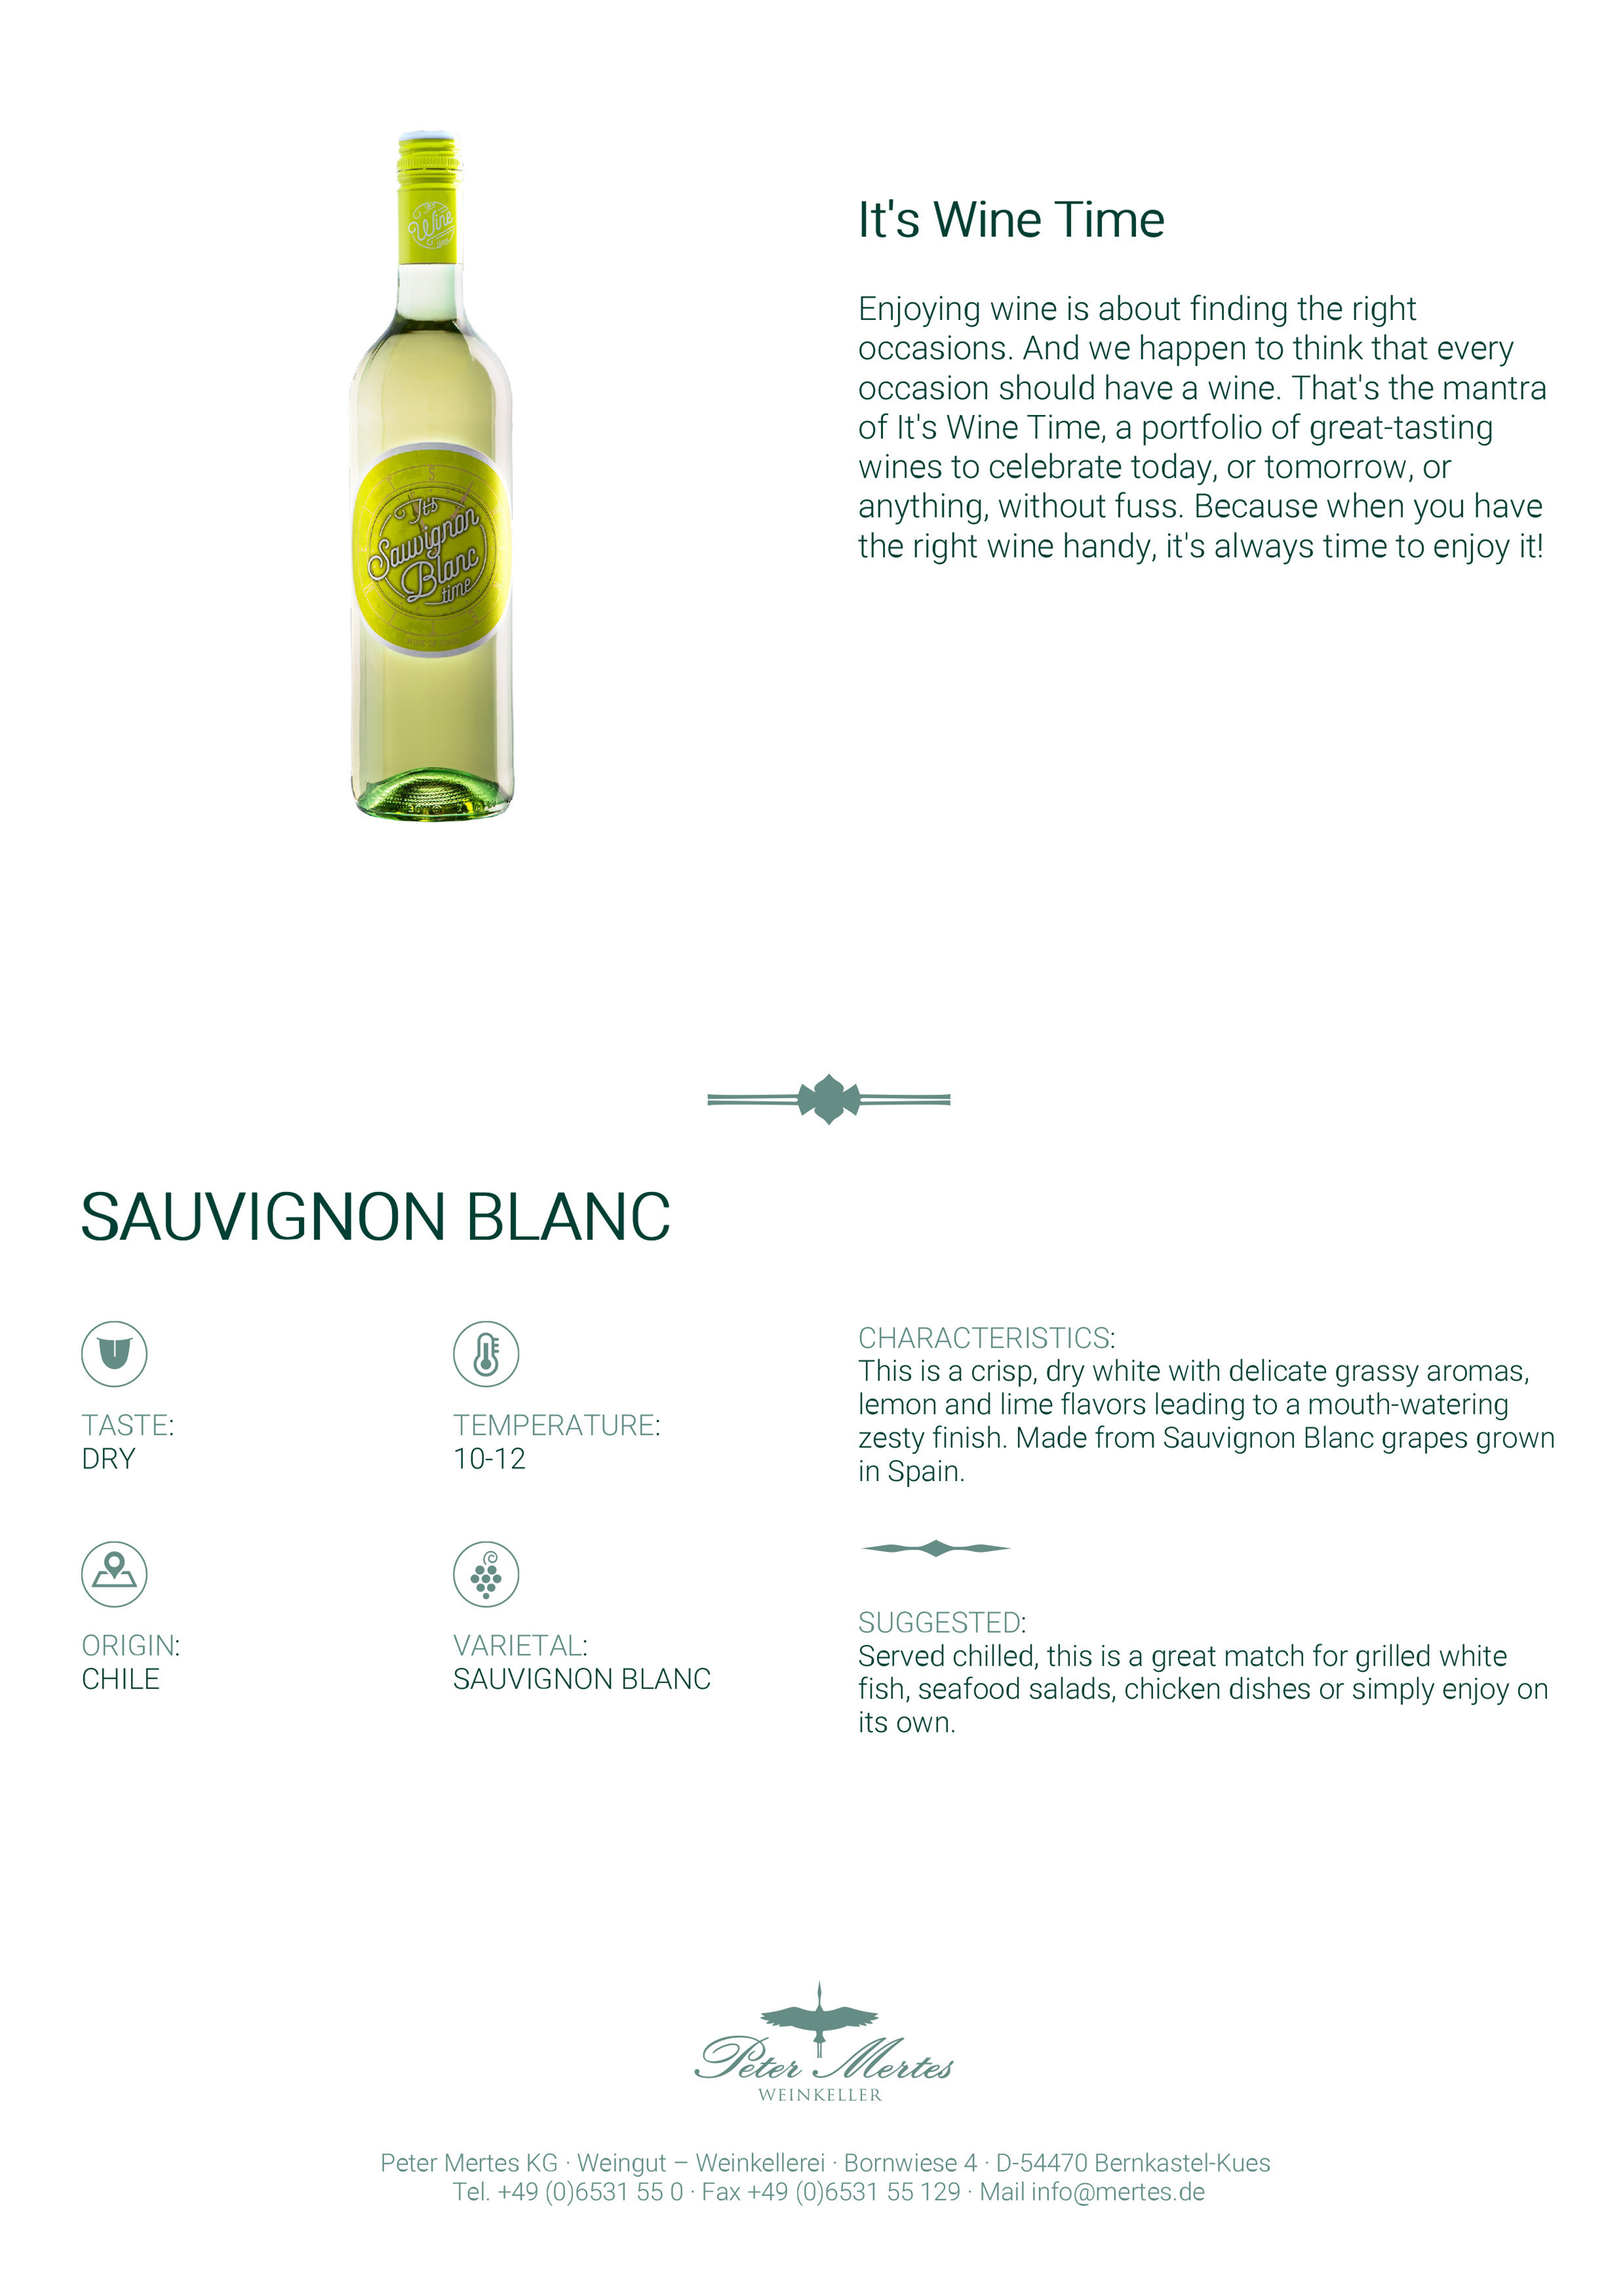 It's Wine Time Sau. Blanc Tasting Note